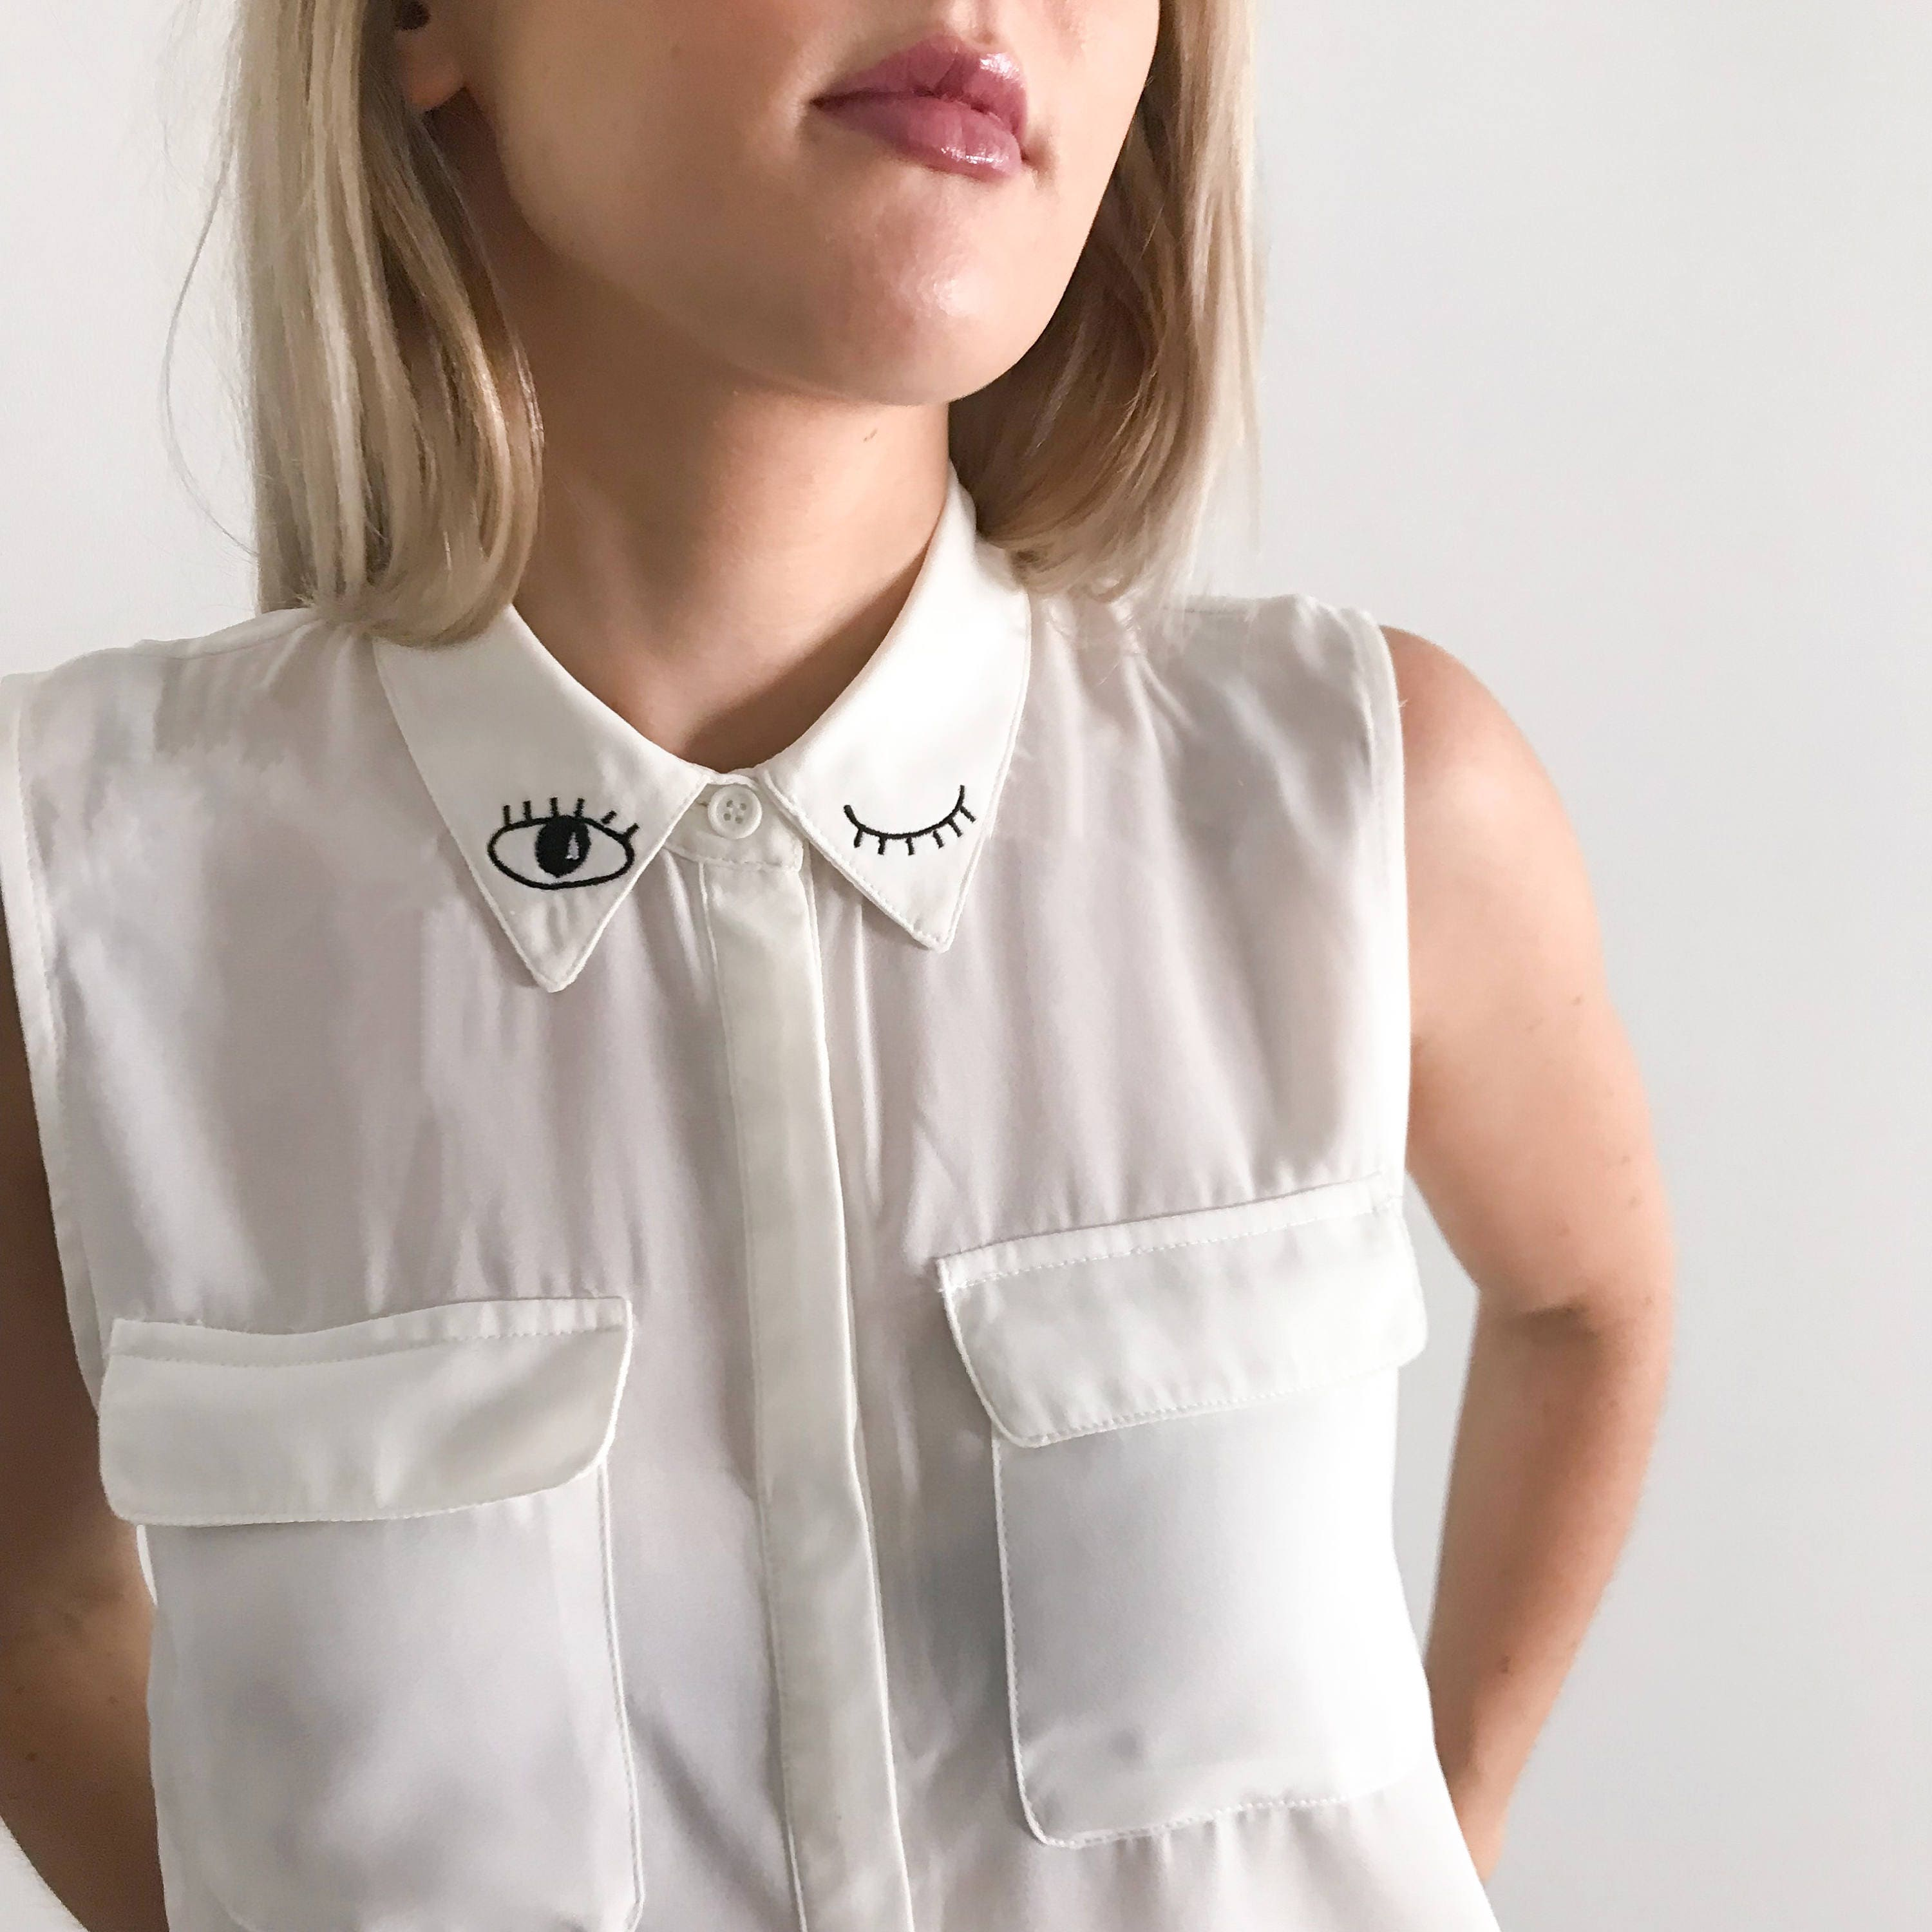 Winking Eye Embroidered Collar Shirt Embroidered Shirt Etsy